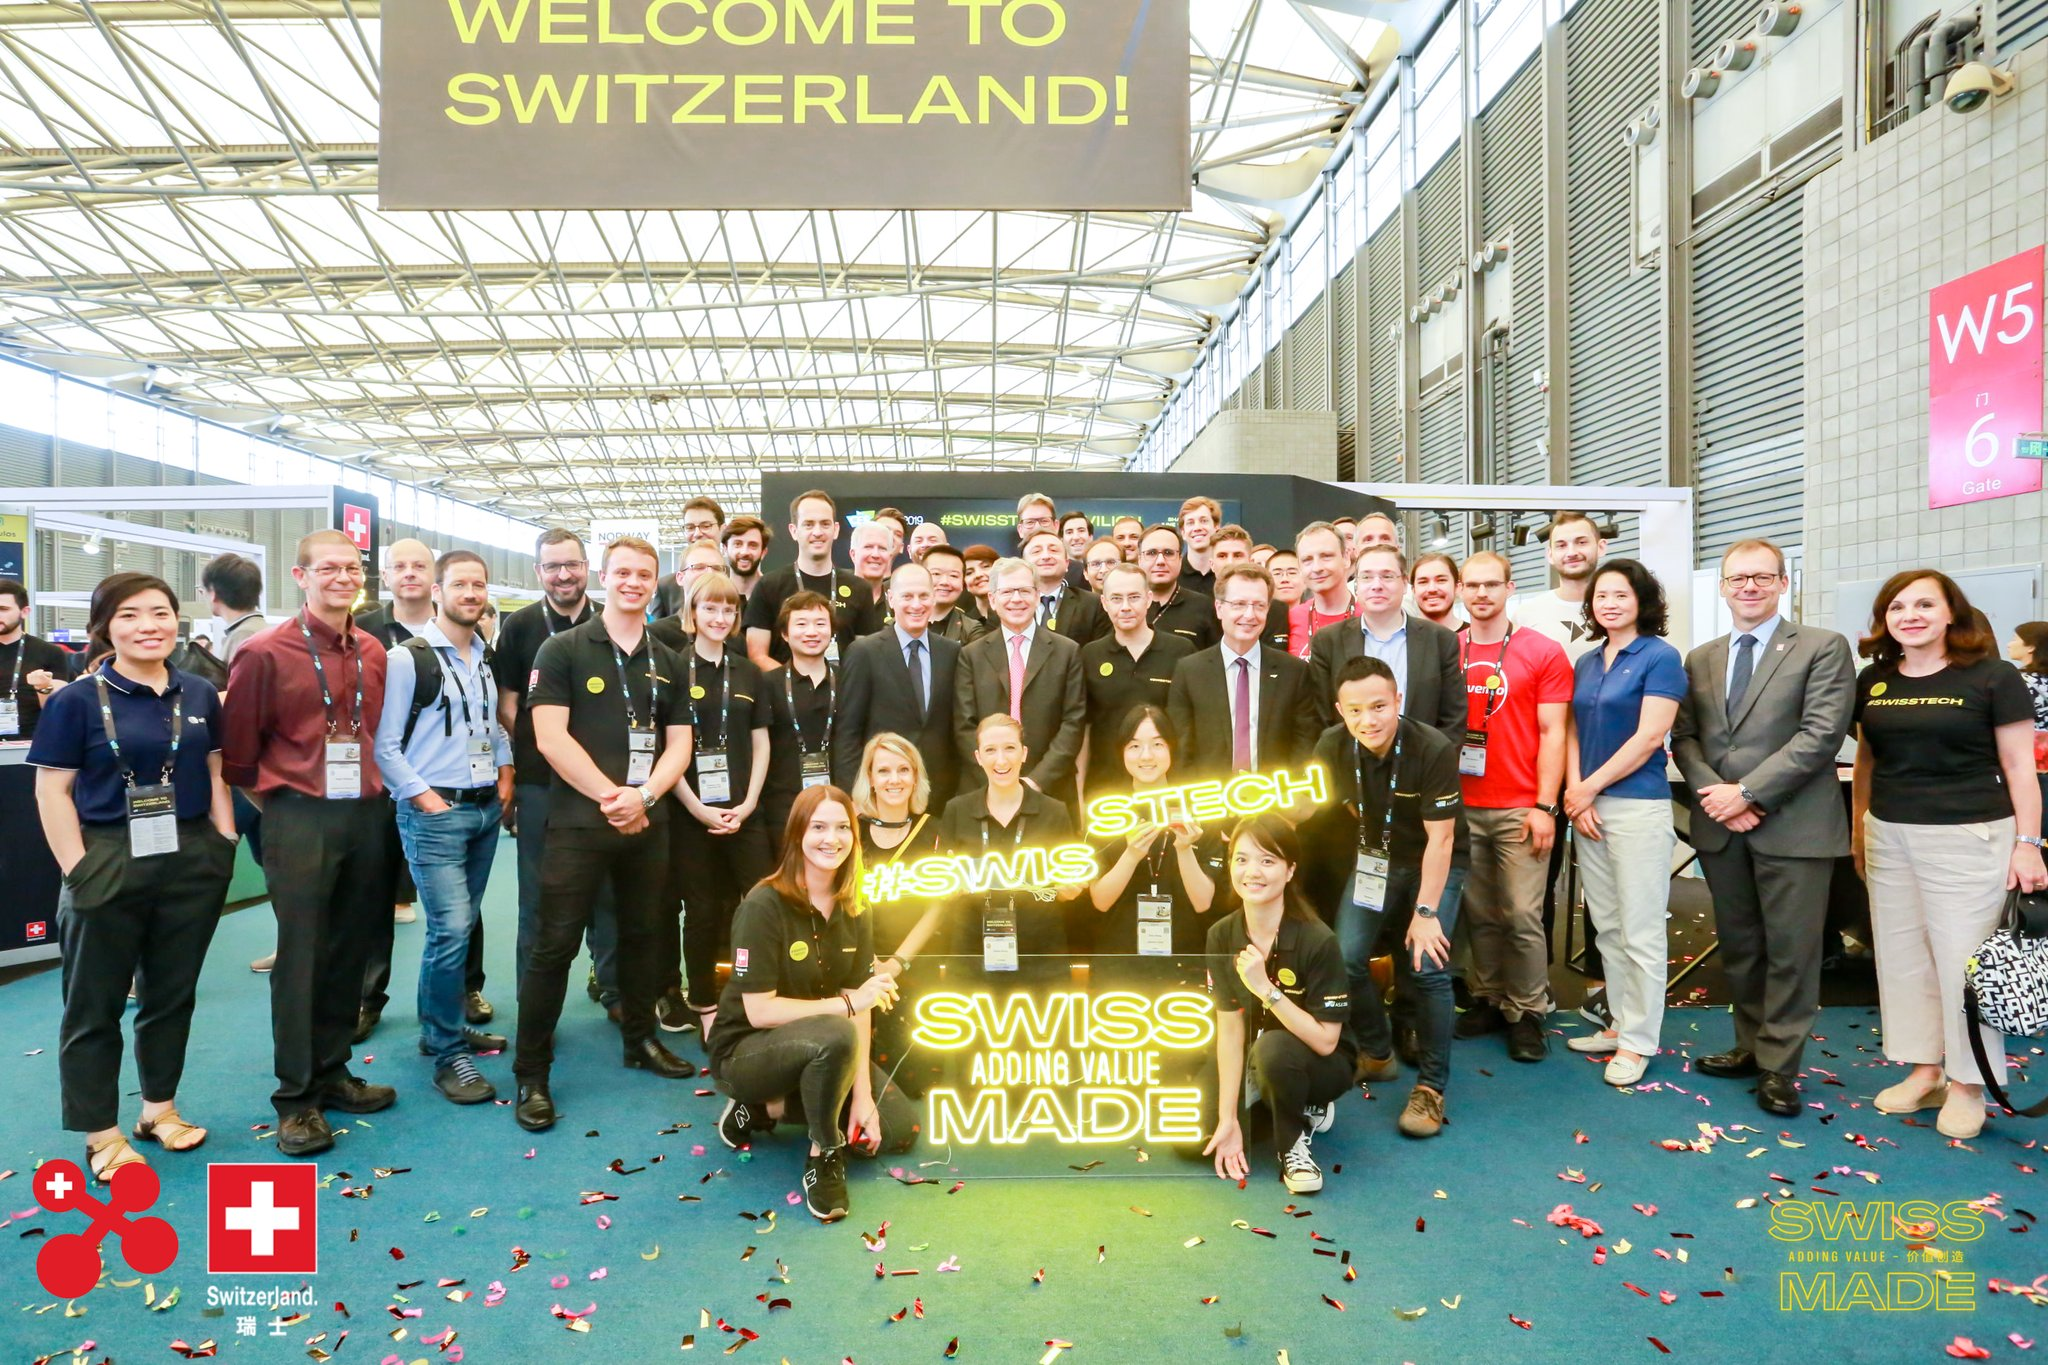 The #SWISSTECH Pavilion at CES Asia 2019 was organized by swissnex China in partnership with Presence Switzerland, and supported by EPFL, ETH Zurich, Greater Zurich Area, innovaud, Lindt, Nespresso, Swisscom, Switzerland Innovation and venturelab.